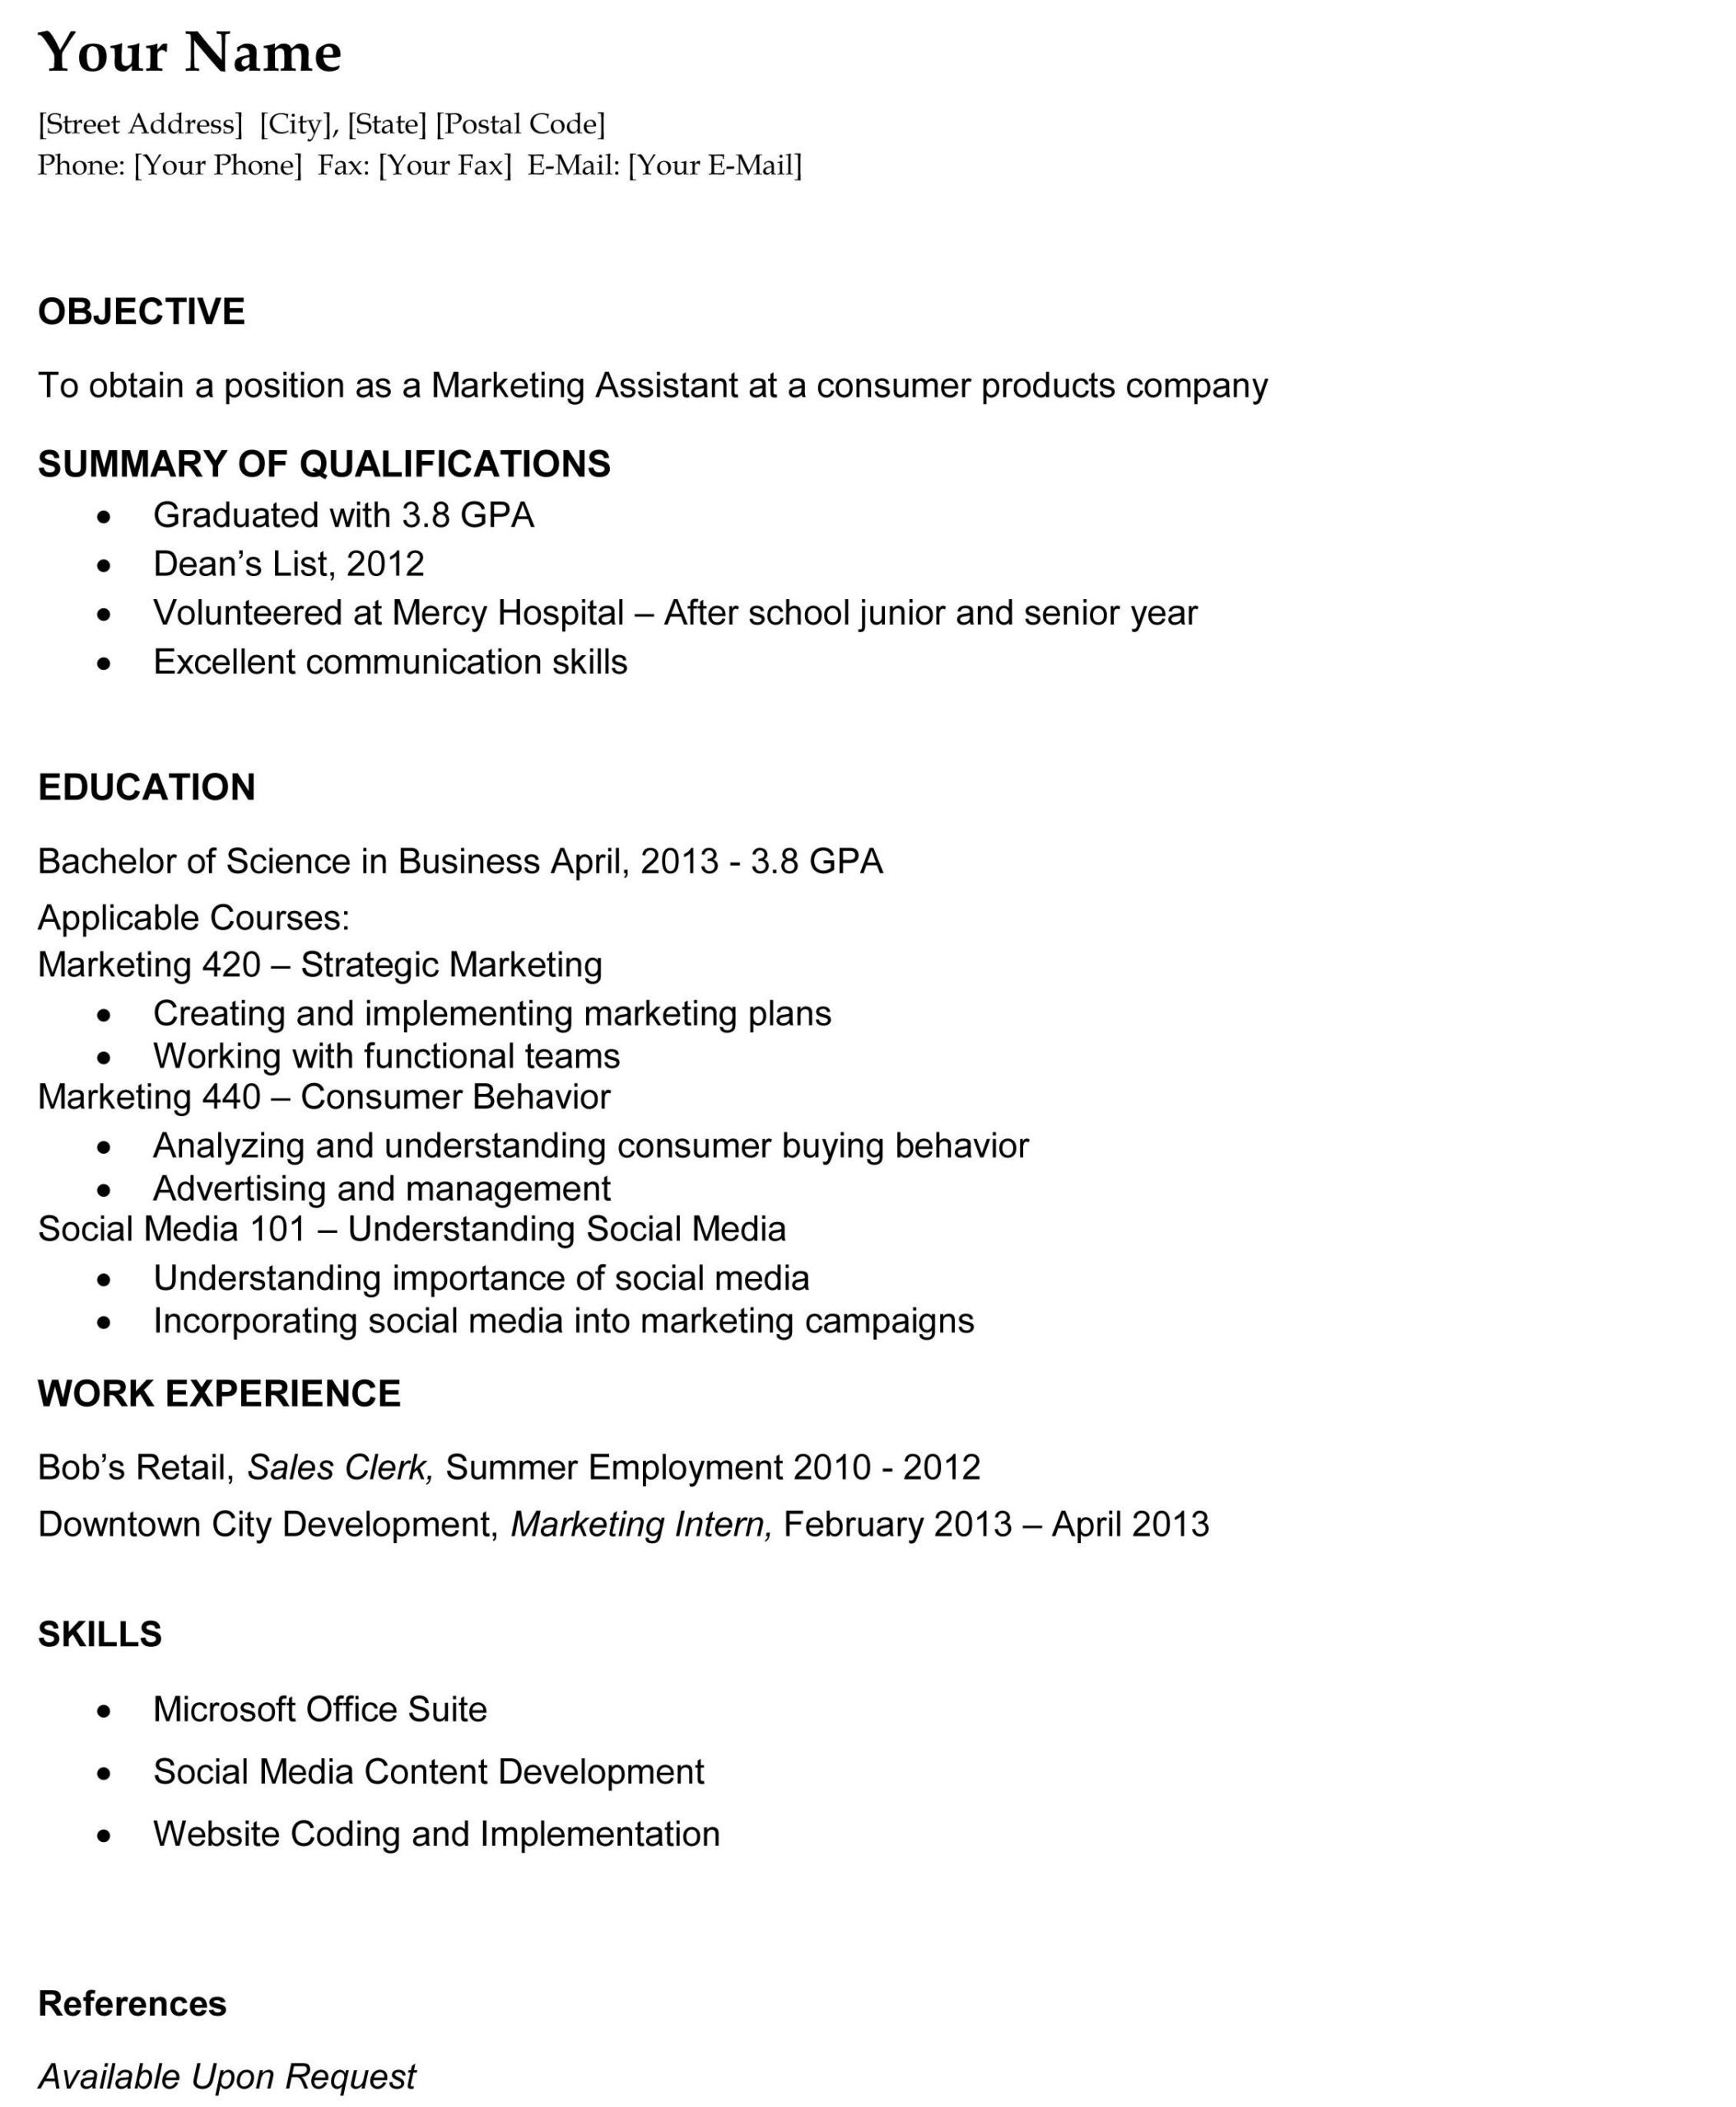 sample psw resume cover letter examples nurse practitioner emergency staff objective job Resume Sample Psw Resume And Cover Letter